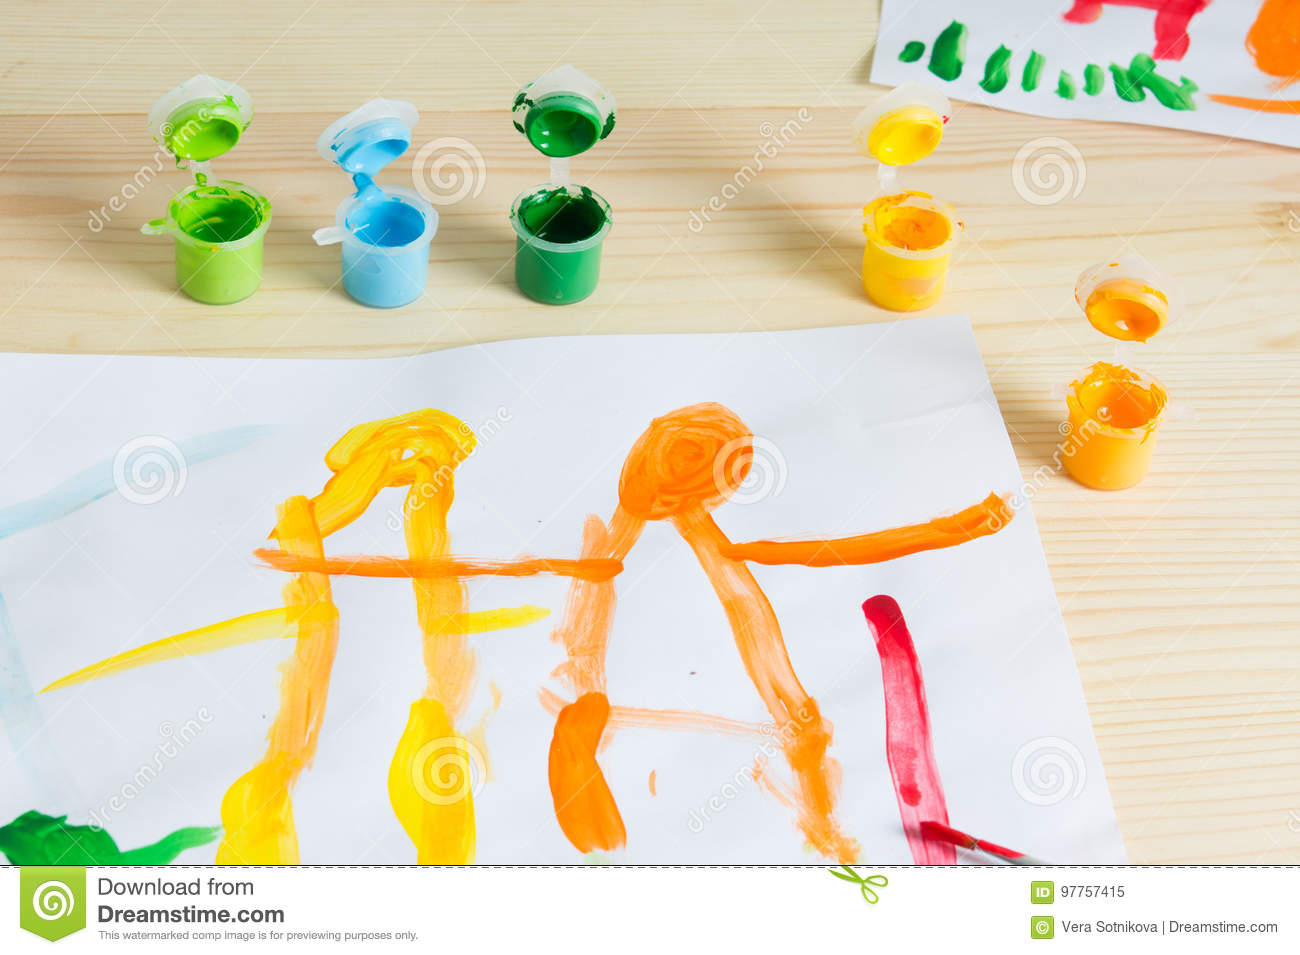 3 year kids drawing happy family picture on the wooden table. To